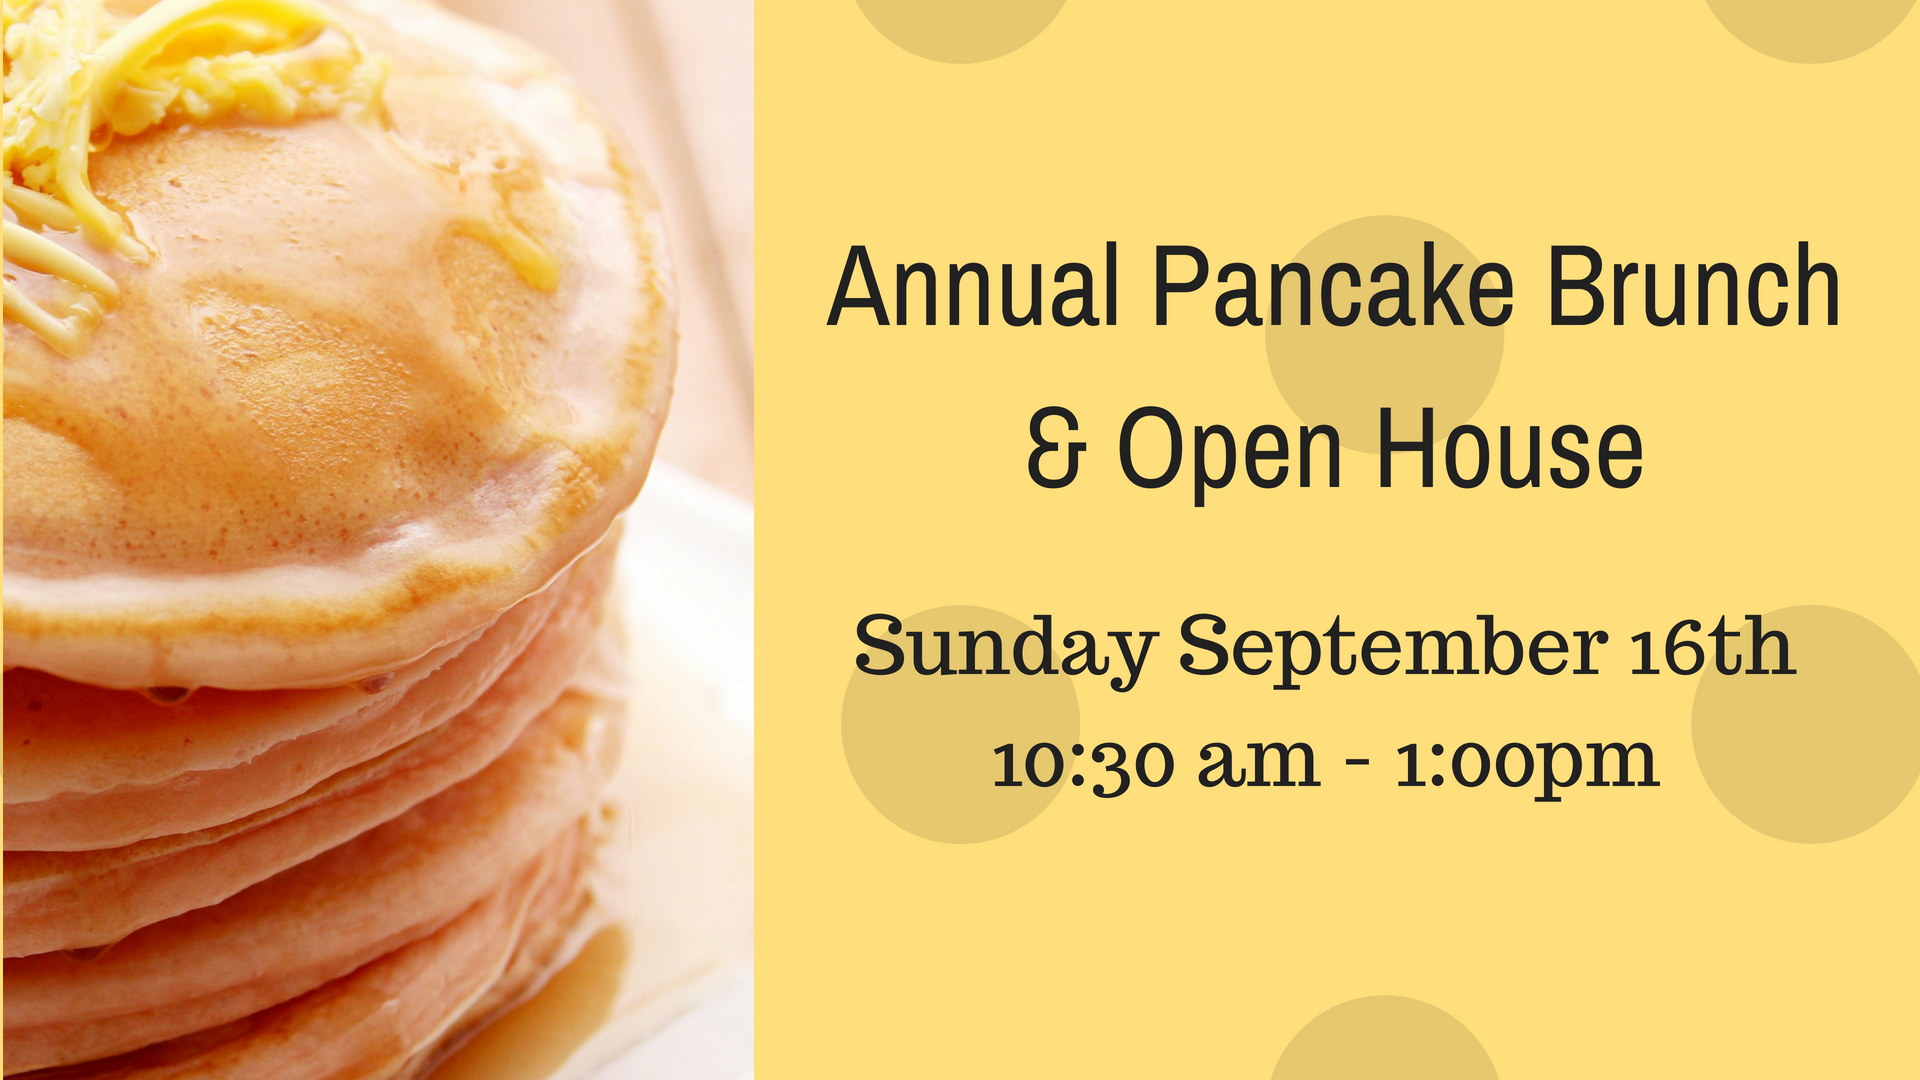 Annual 20pancake 20brunch 20  20open 20house